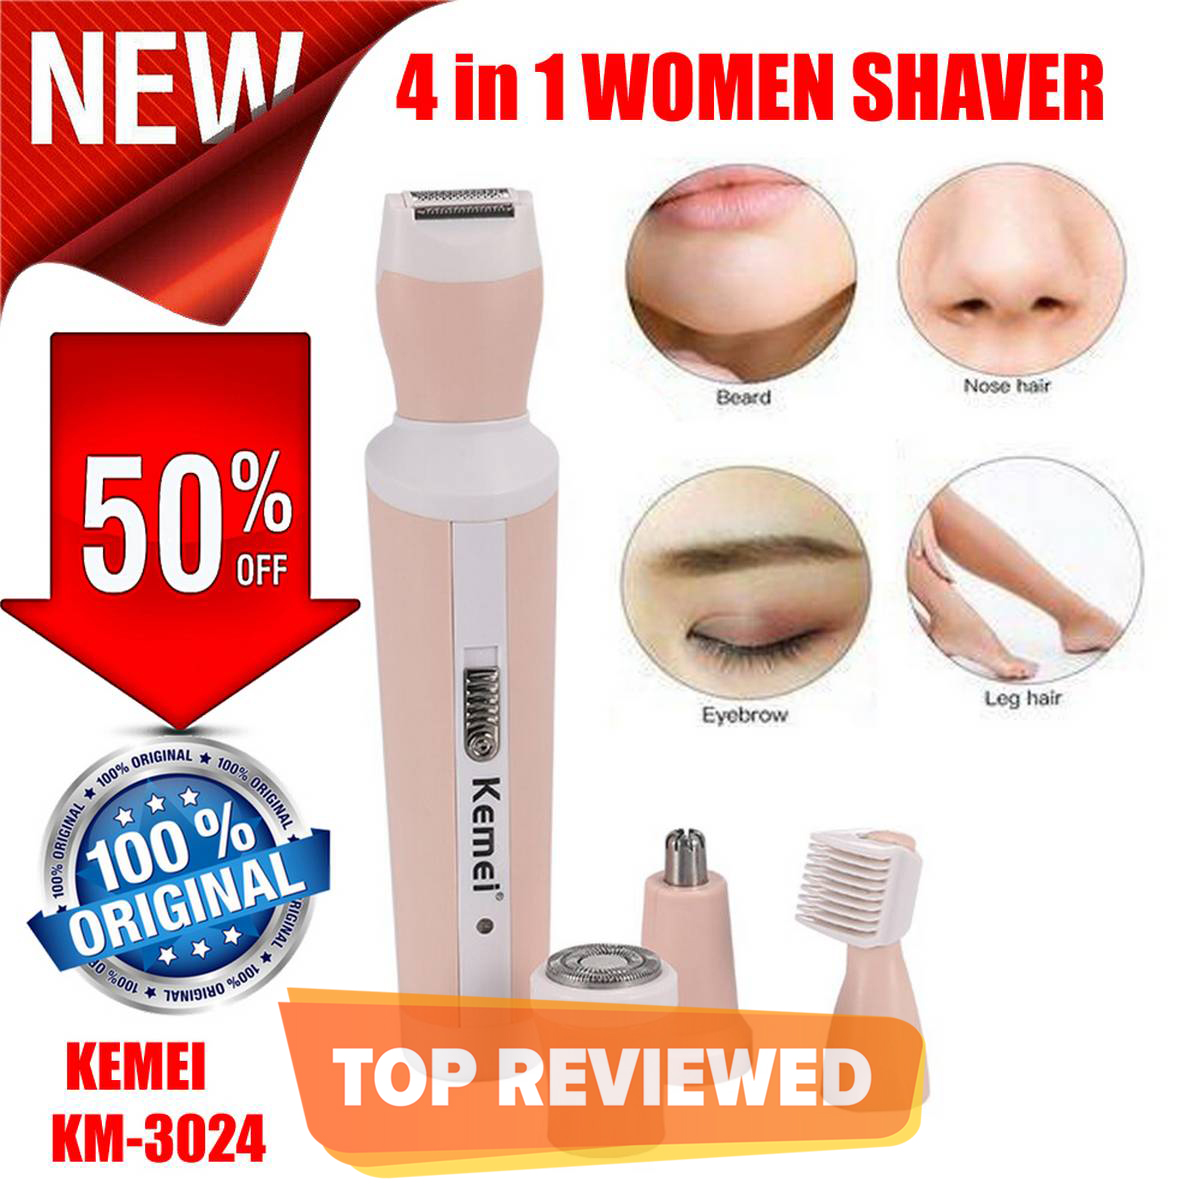 NEW KEMEI km-3024 Rechargeable Women Skin Shaver suit Nose Eyebrow Trimmer Body Easily Hair 4 in 1 Electric Hair Removal Shaving machine Grooming Kit Original Imported Best Genuine KM 3024